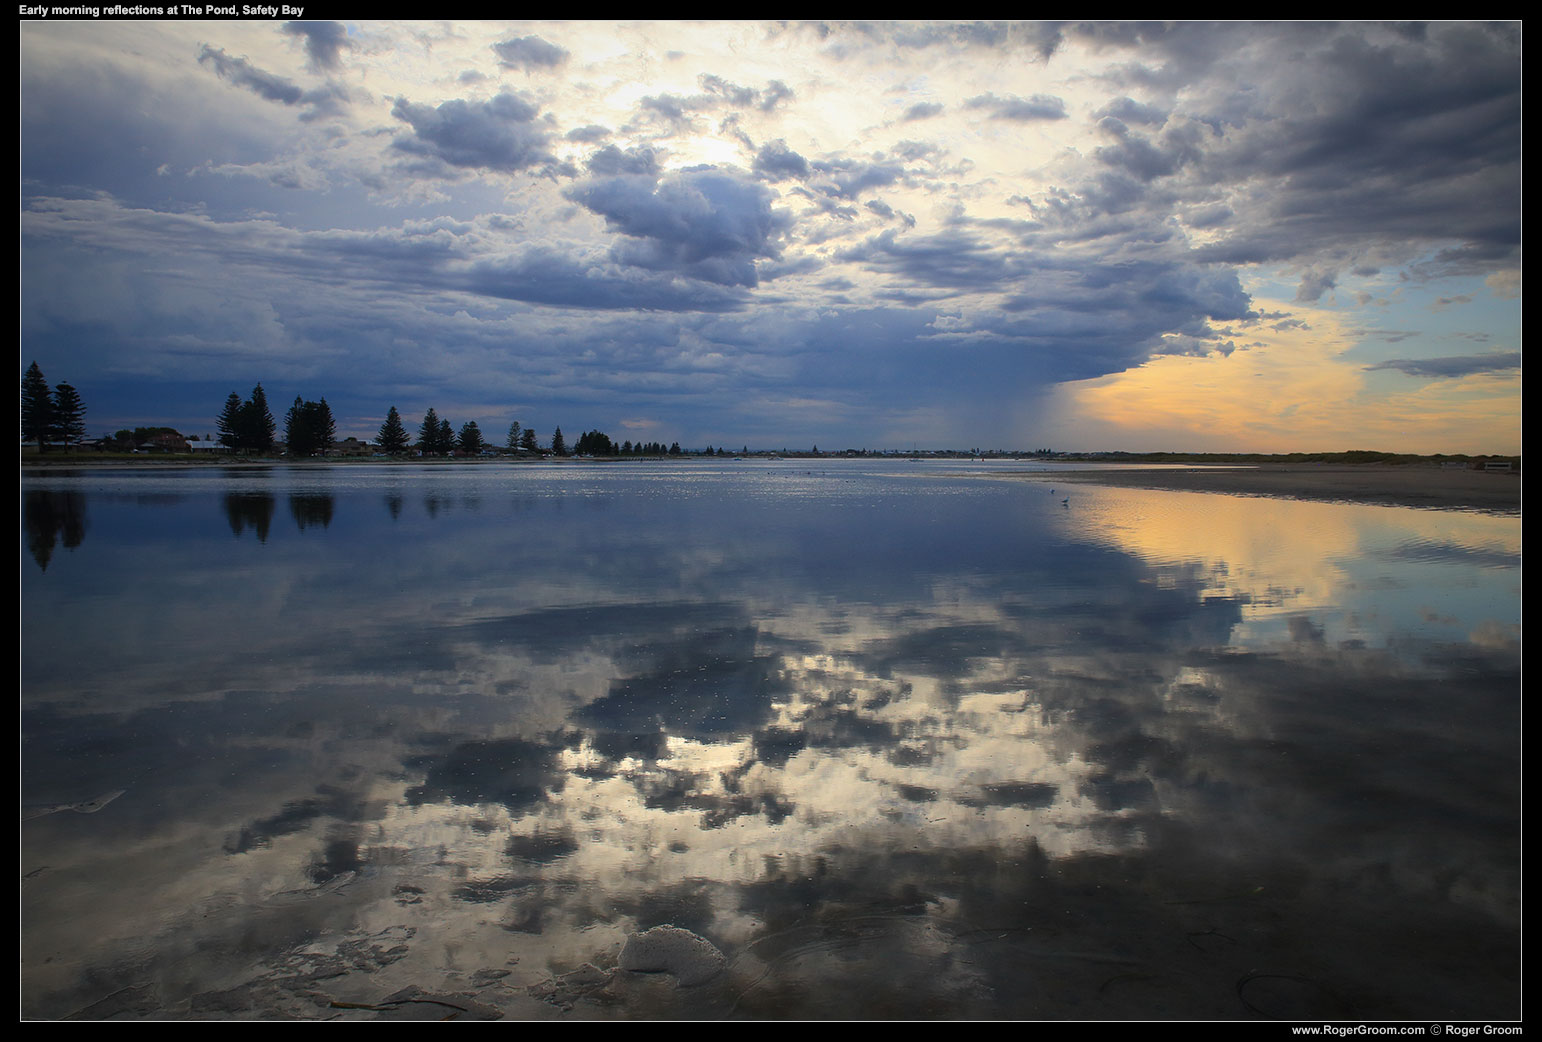 Early morning reflections in The Pond at Safety Bay / Tern Island with storm clouds in the distance.